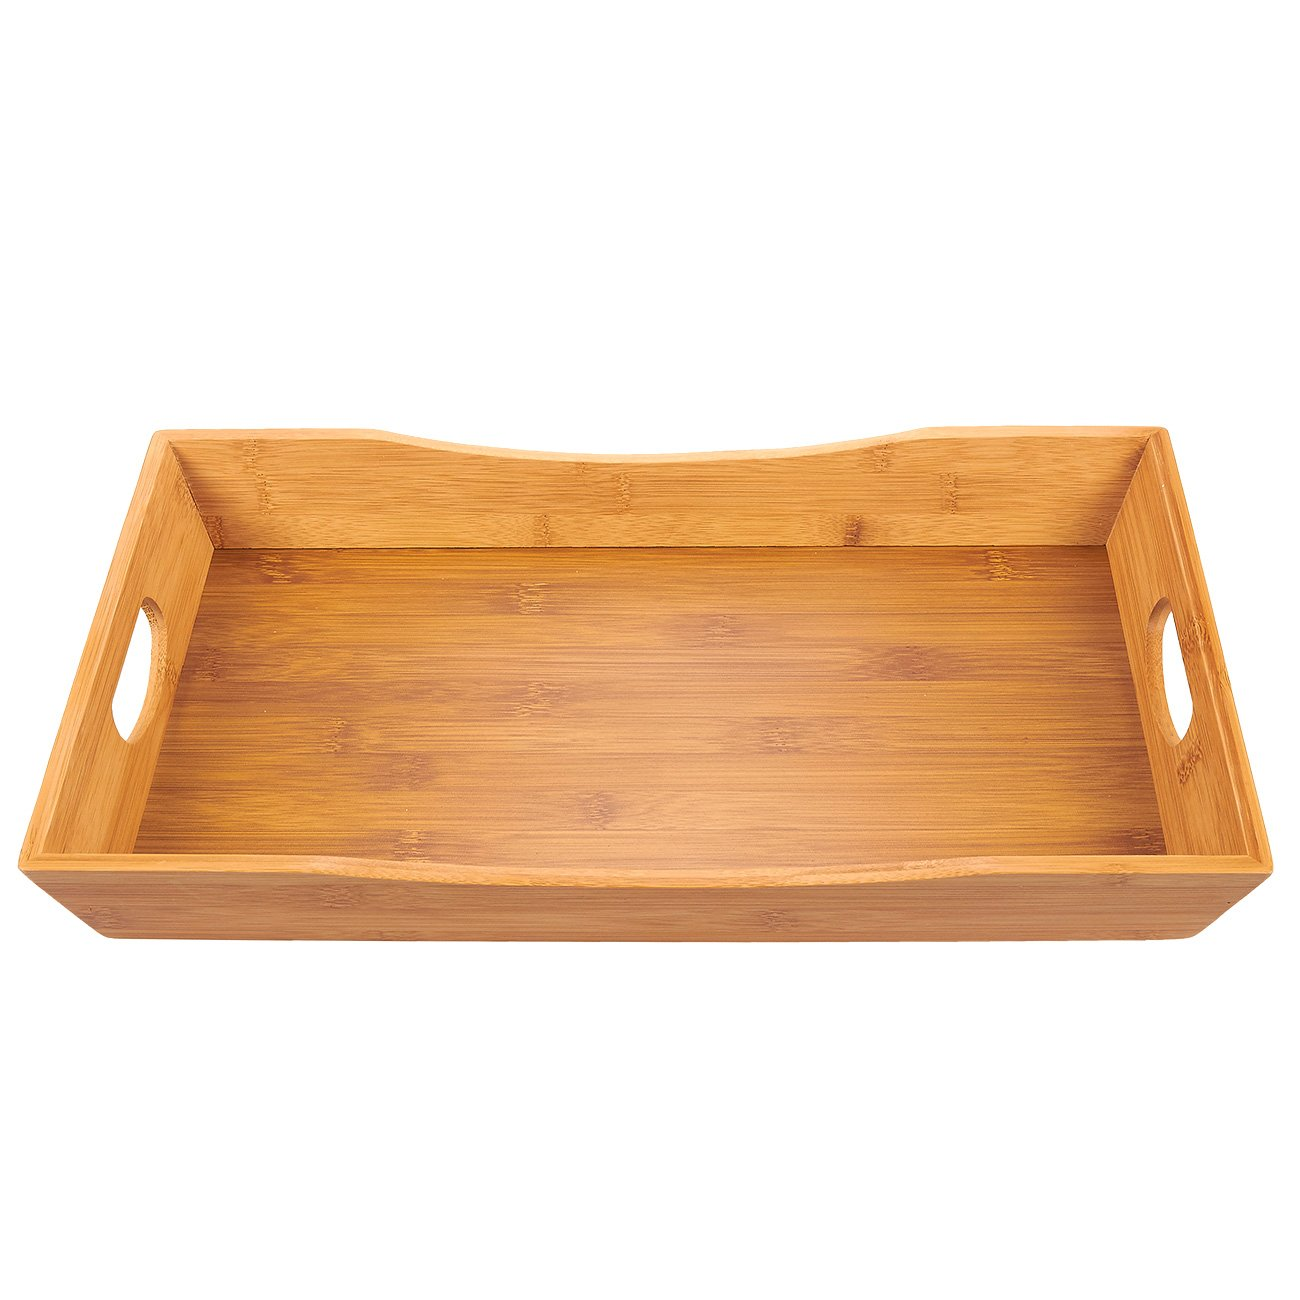 Juvale Bamboo Serving Tray - Breakfast Serving Tray with Double Handles for Food and Beverage, Ottoman Bed Tray, Brown, 16 x 2.1 x 9.7 Inches